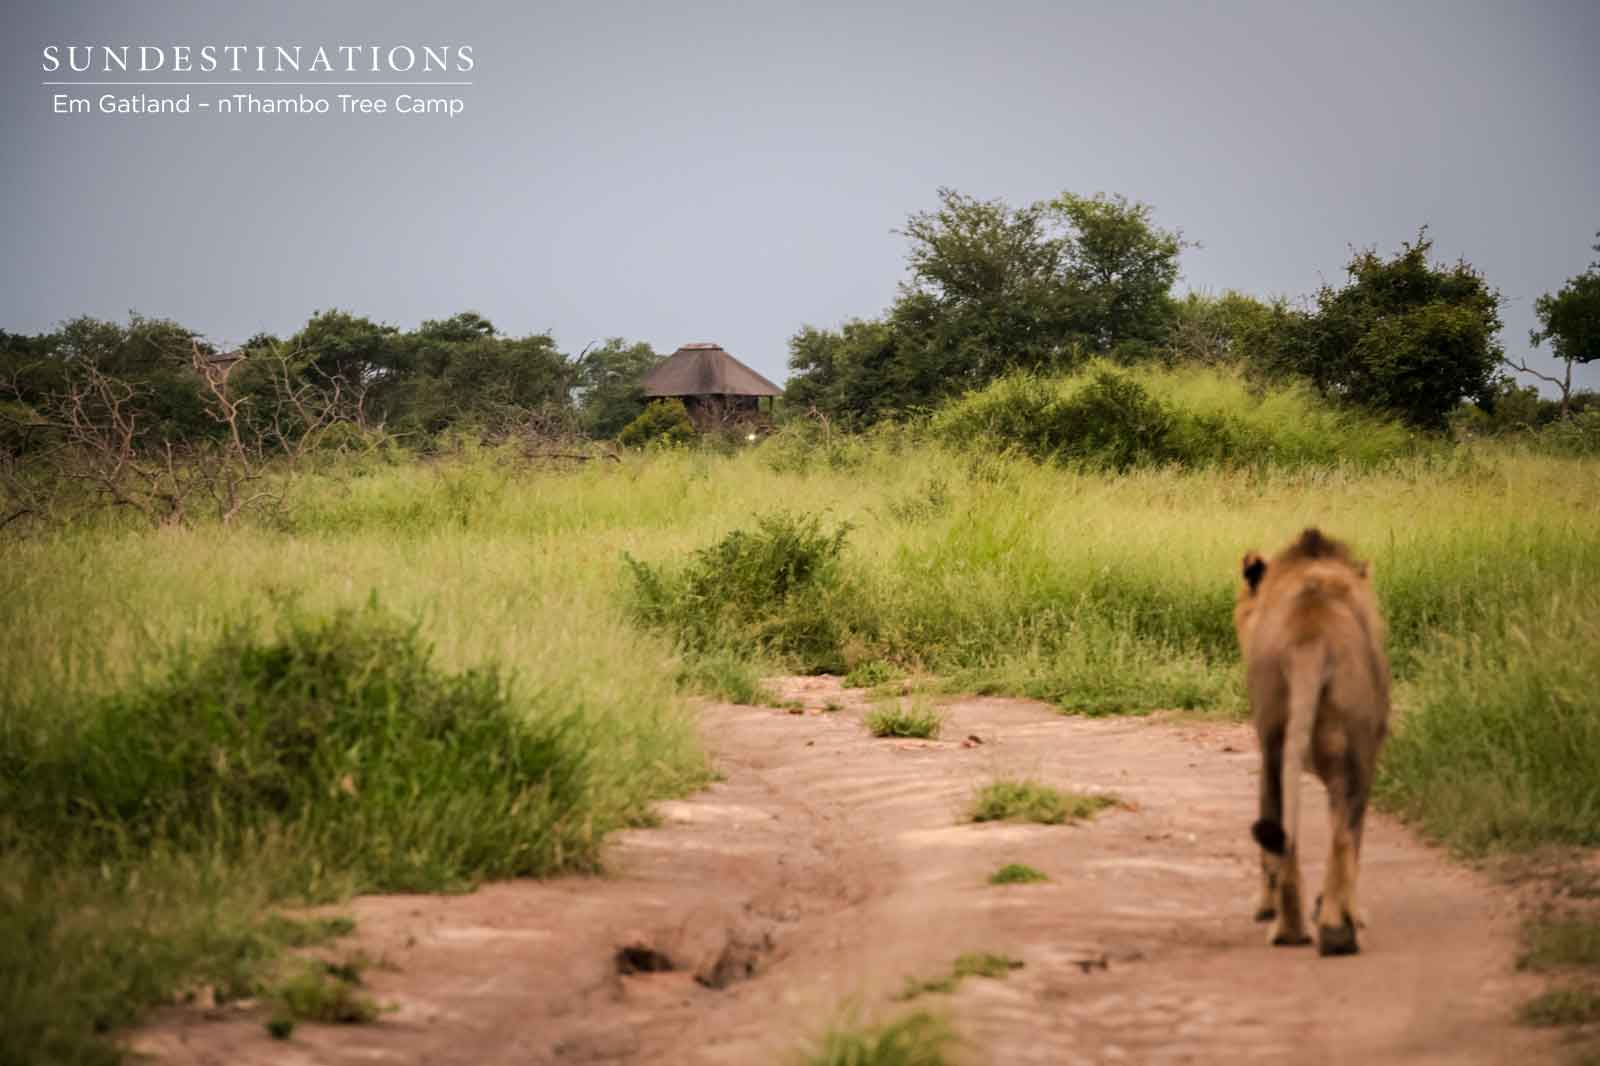 nThambo Lion Walking Down Road